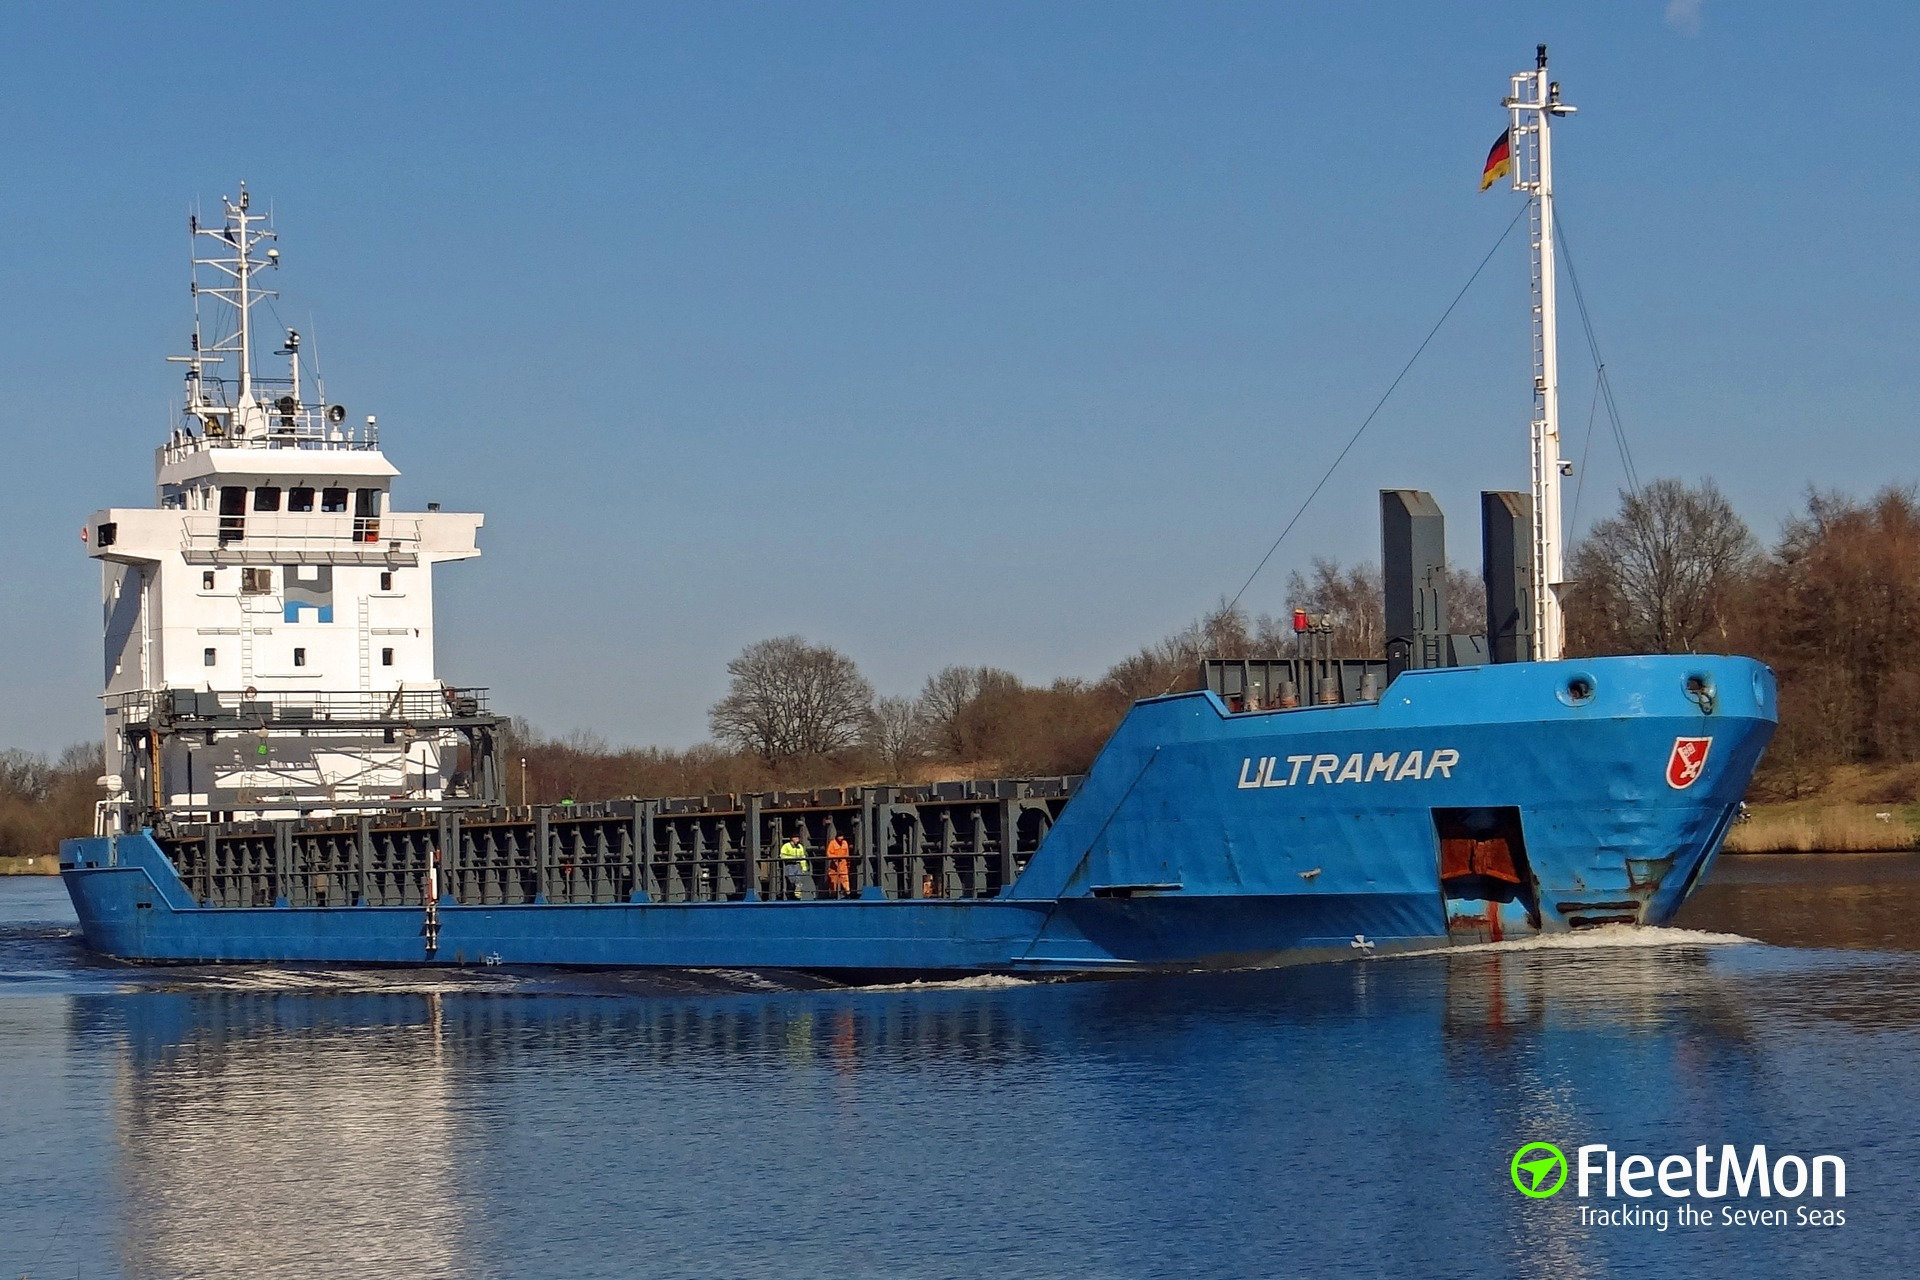 Ultramar grounding, Kiel Canal